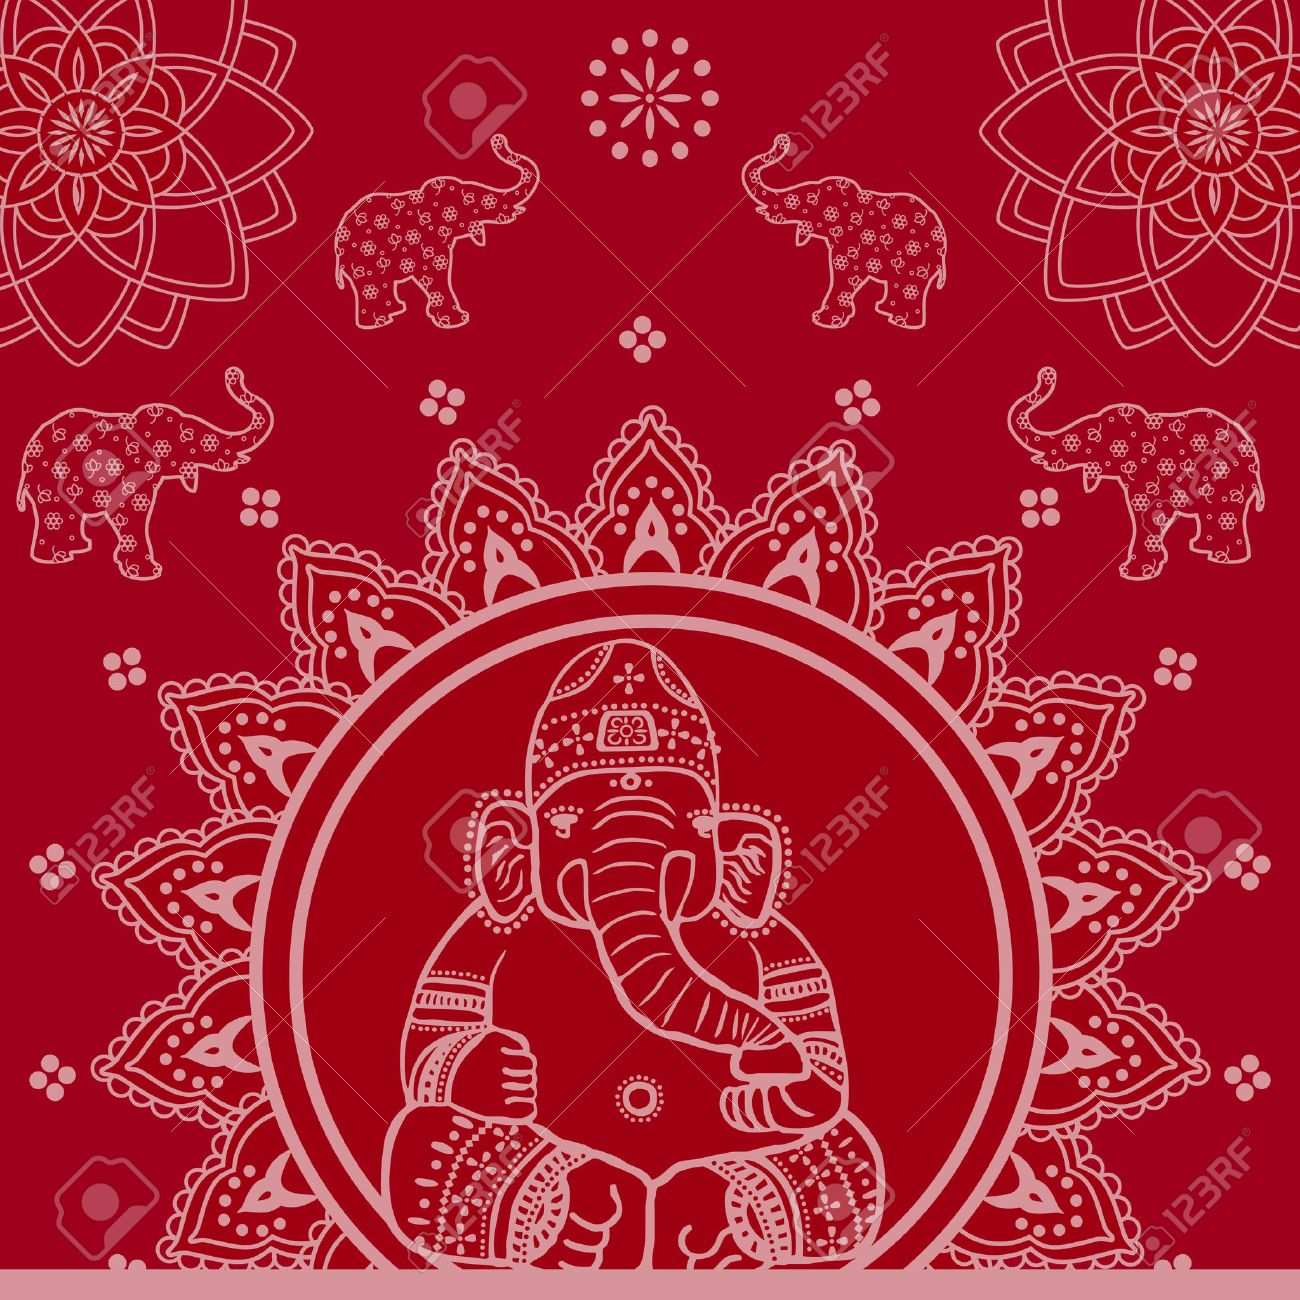 Red Traditional Indian Ganesh Mandala Background Stock Vector - 28128289